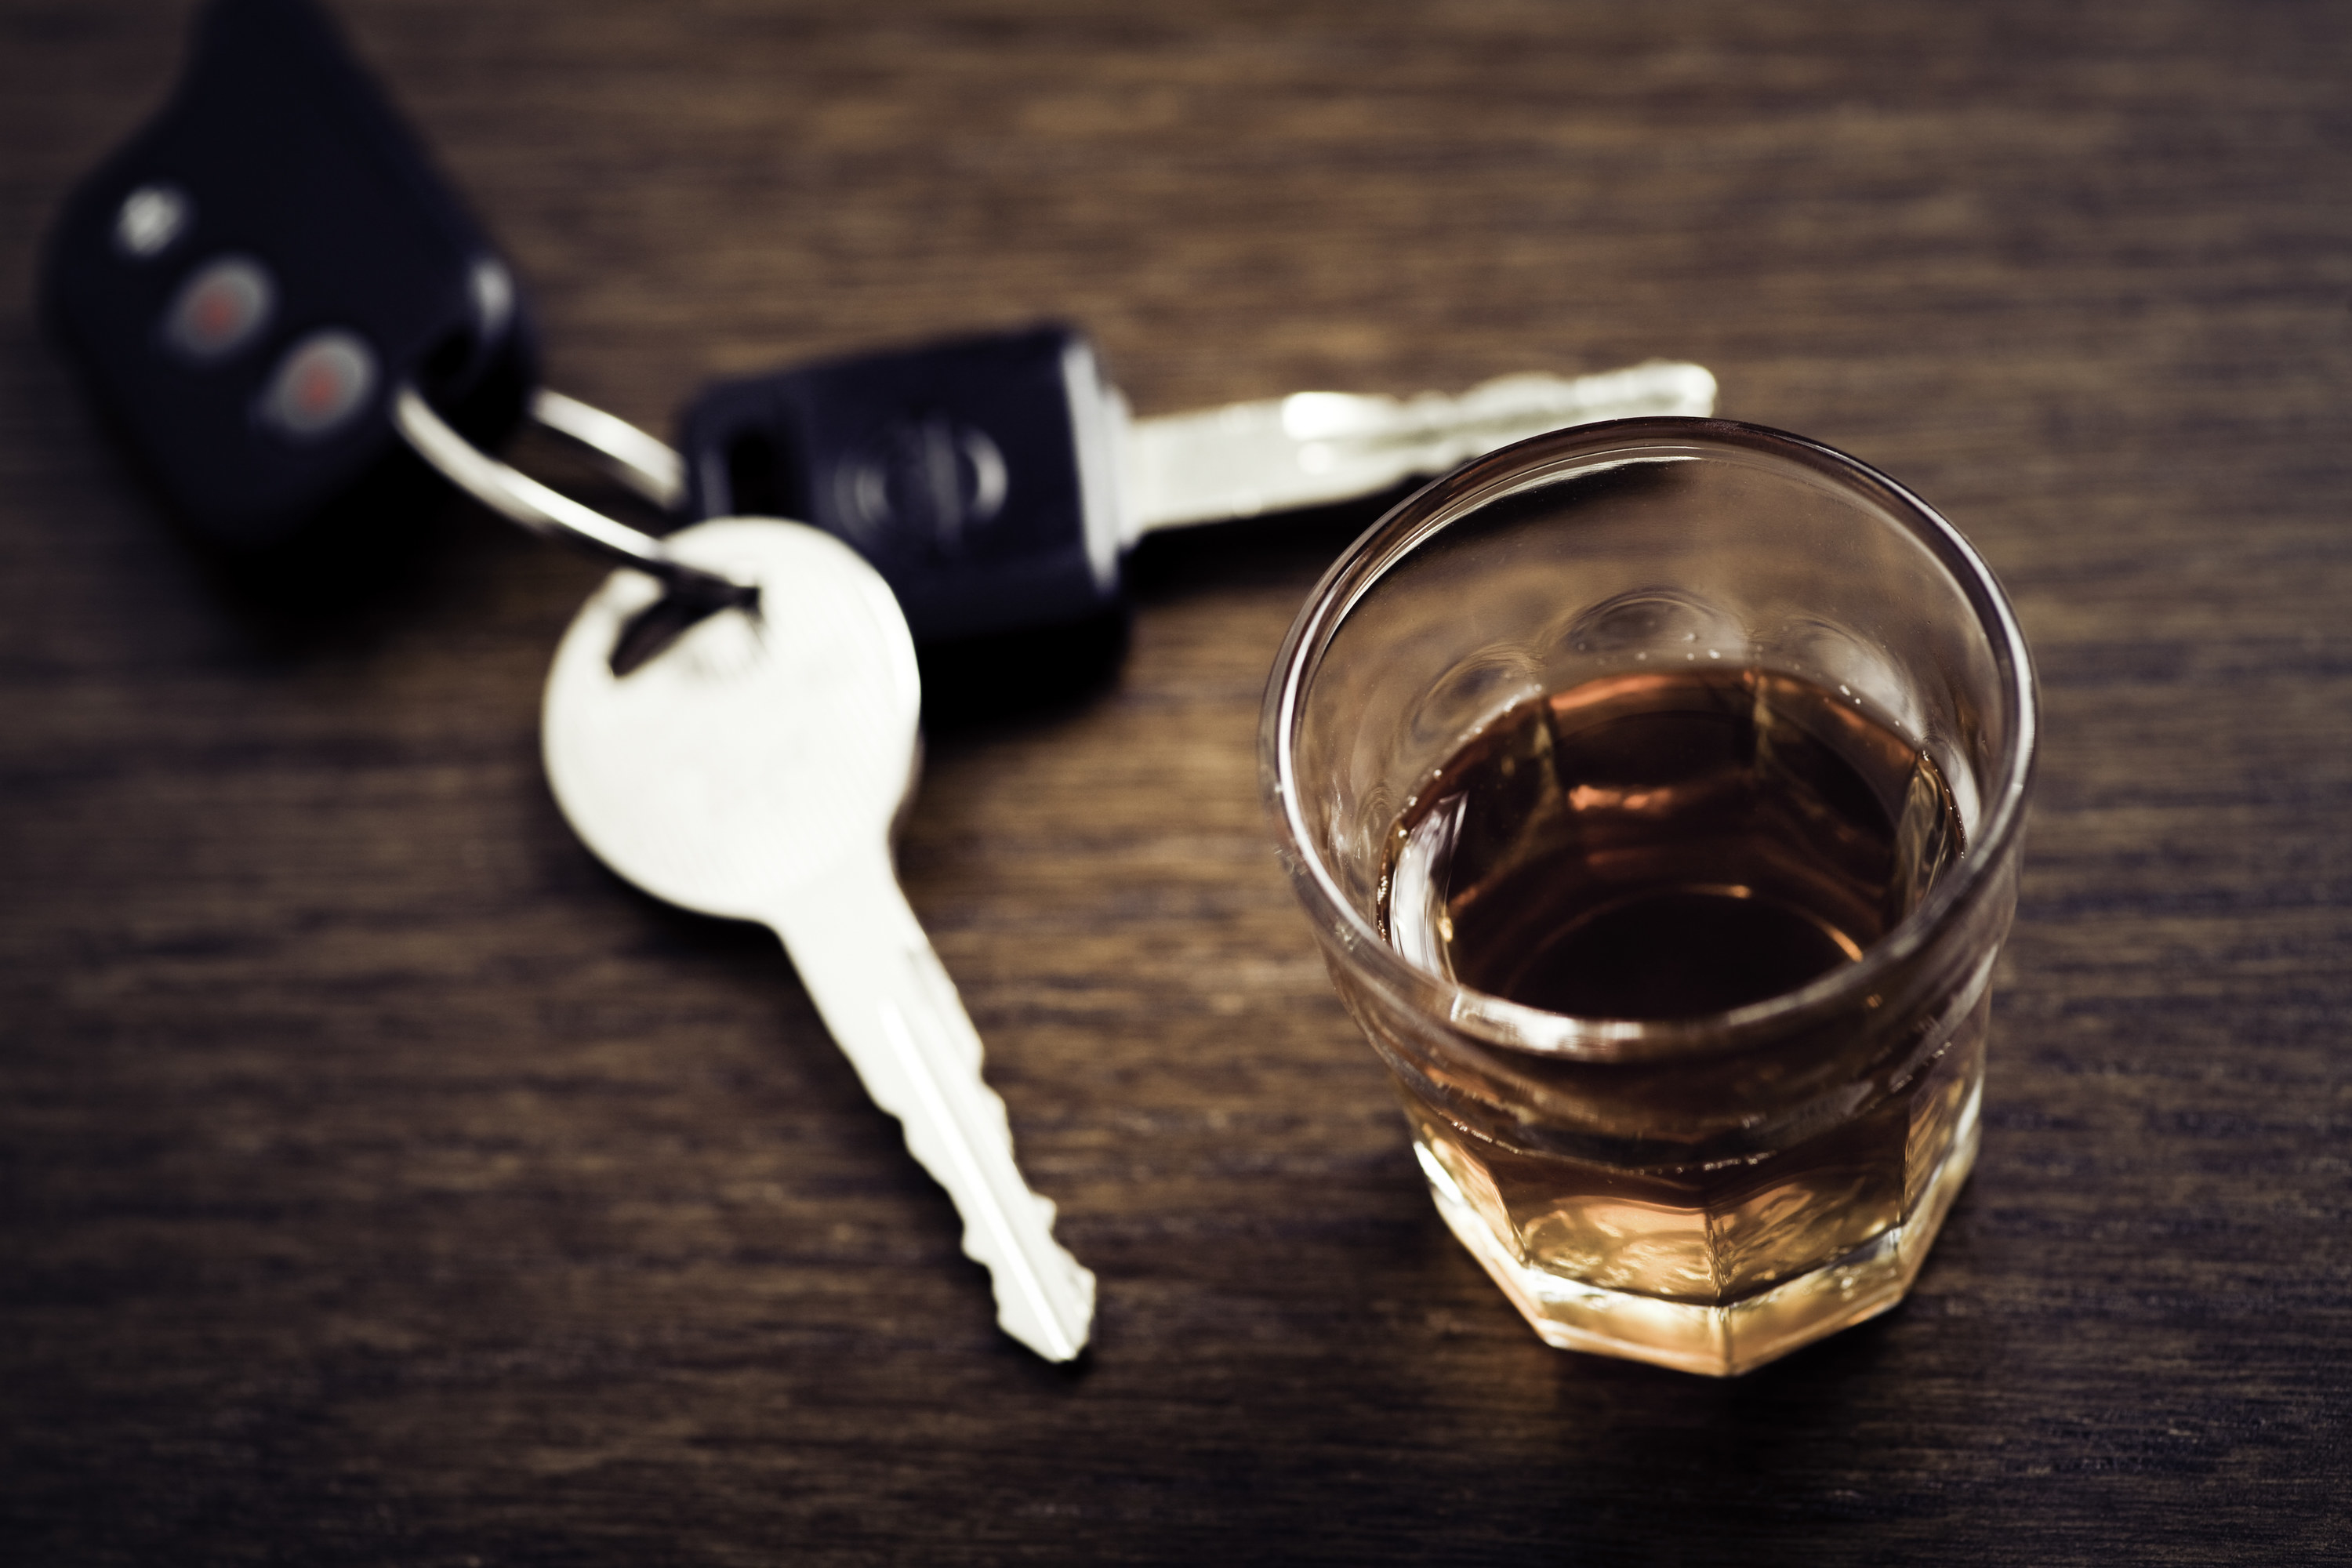 shot glass next to car keys